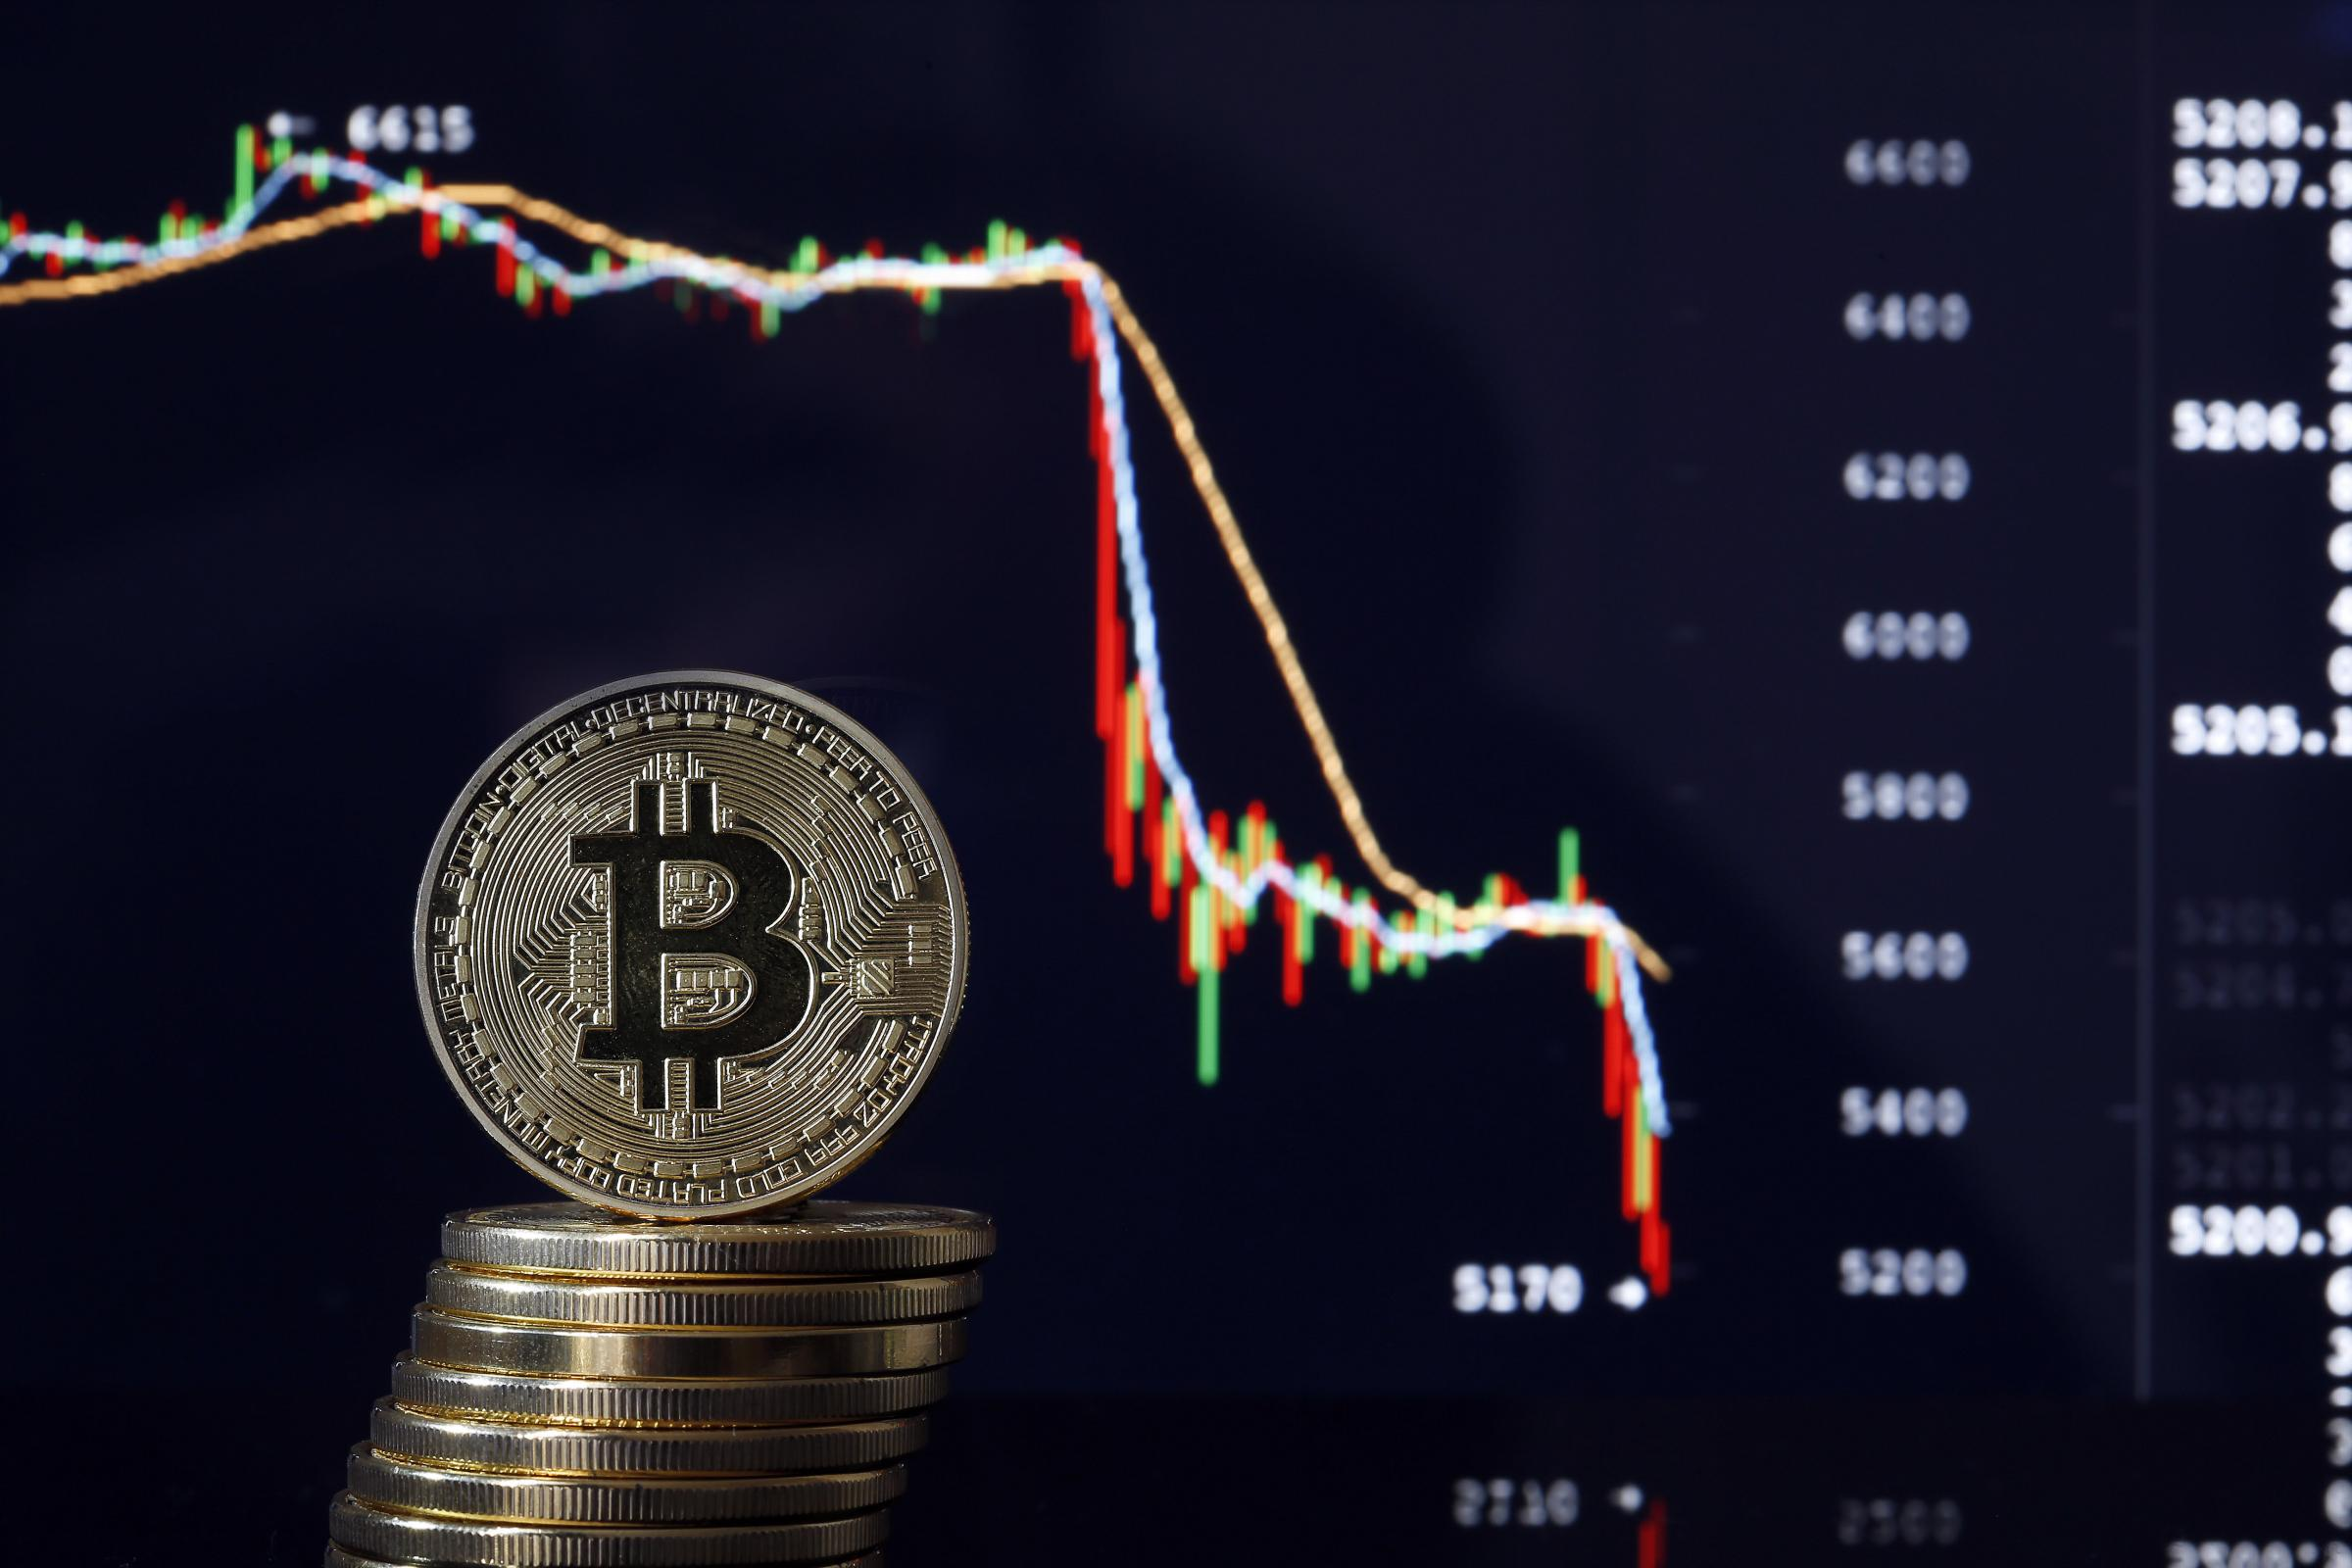 PARIS, ILE DE FRANCE - NOVEMBER 20:  In this photo illustration, a visual representation of the digital Cryptocurrency, Bitcoin is displayed in front of the Bitcoin course's graph of Bitfinex cryptocurrency exchange website on November 20, 2018 in Par